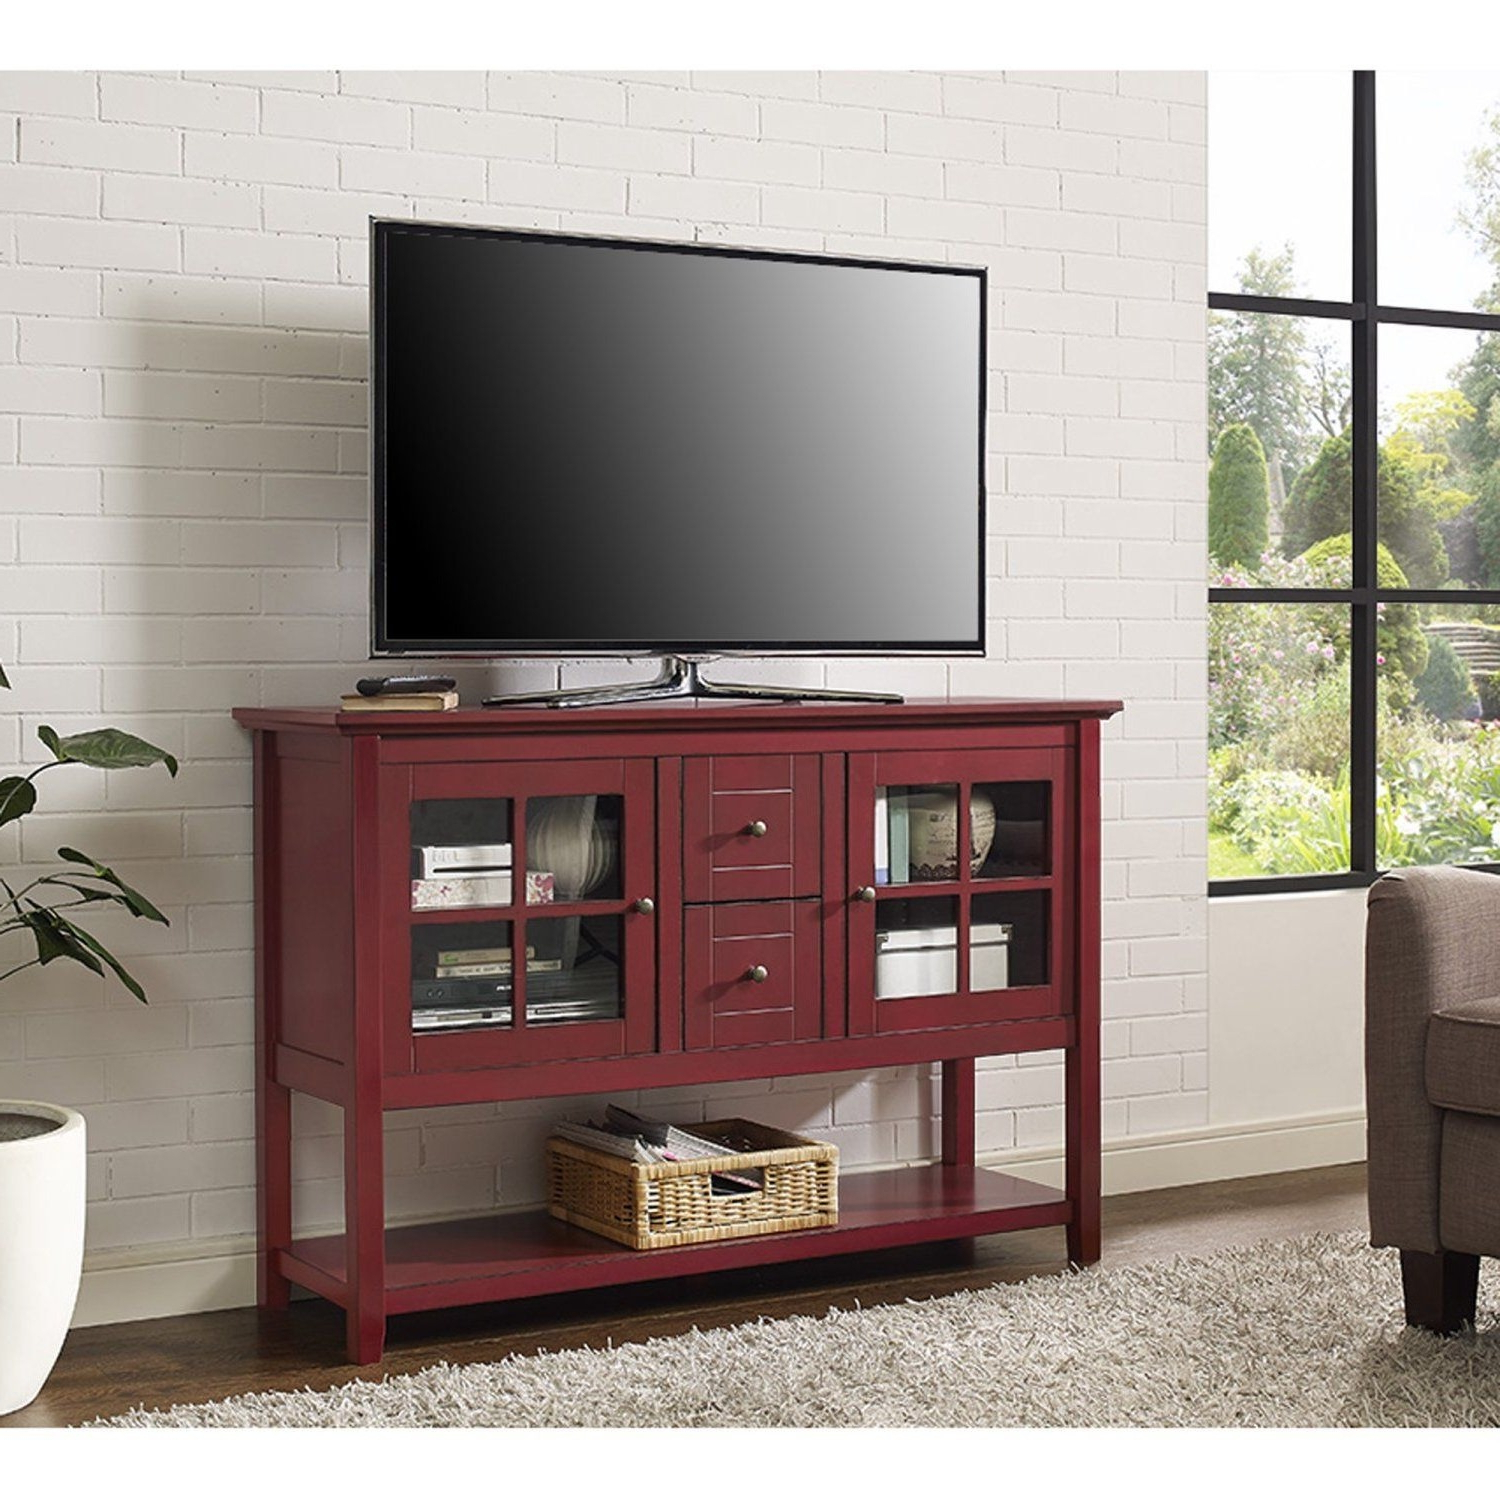 "Red Tv Stands Throughout Recent Red Tv Stand 55"" Wood & Glass Media Console Cabinet Table Furniture (Gallery 8 of 20)"